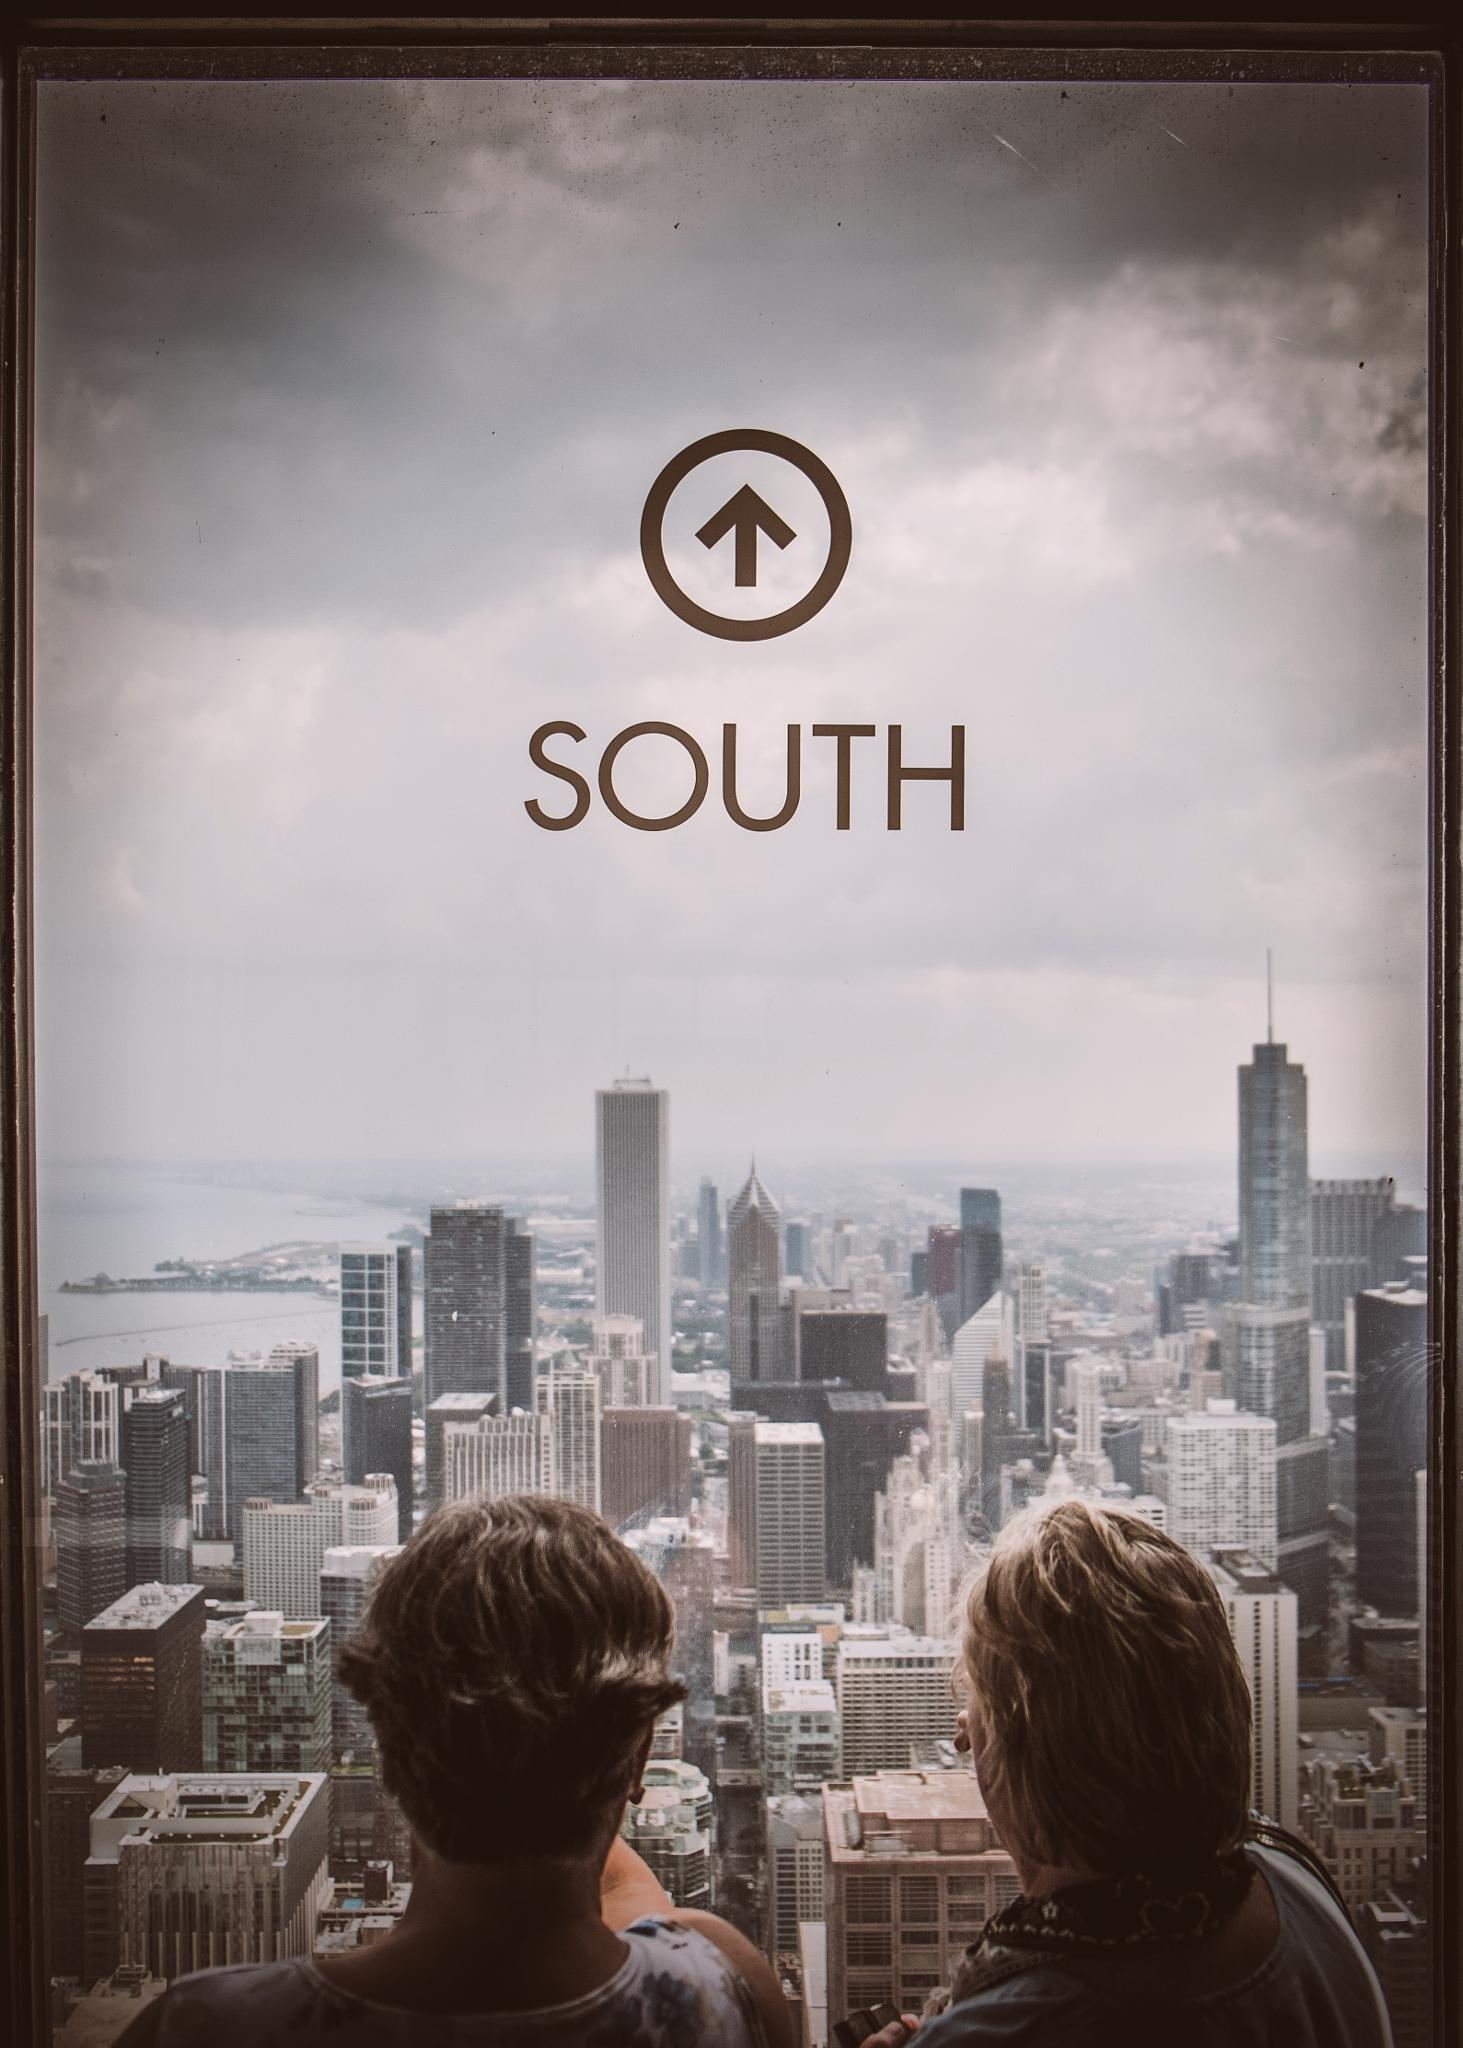 Head north to south by stelhenrique